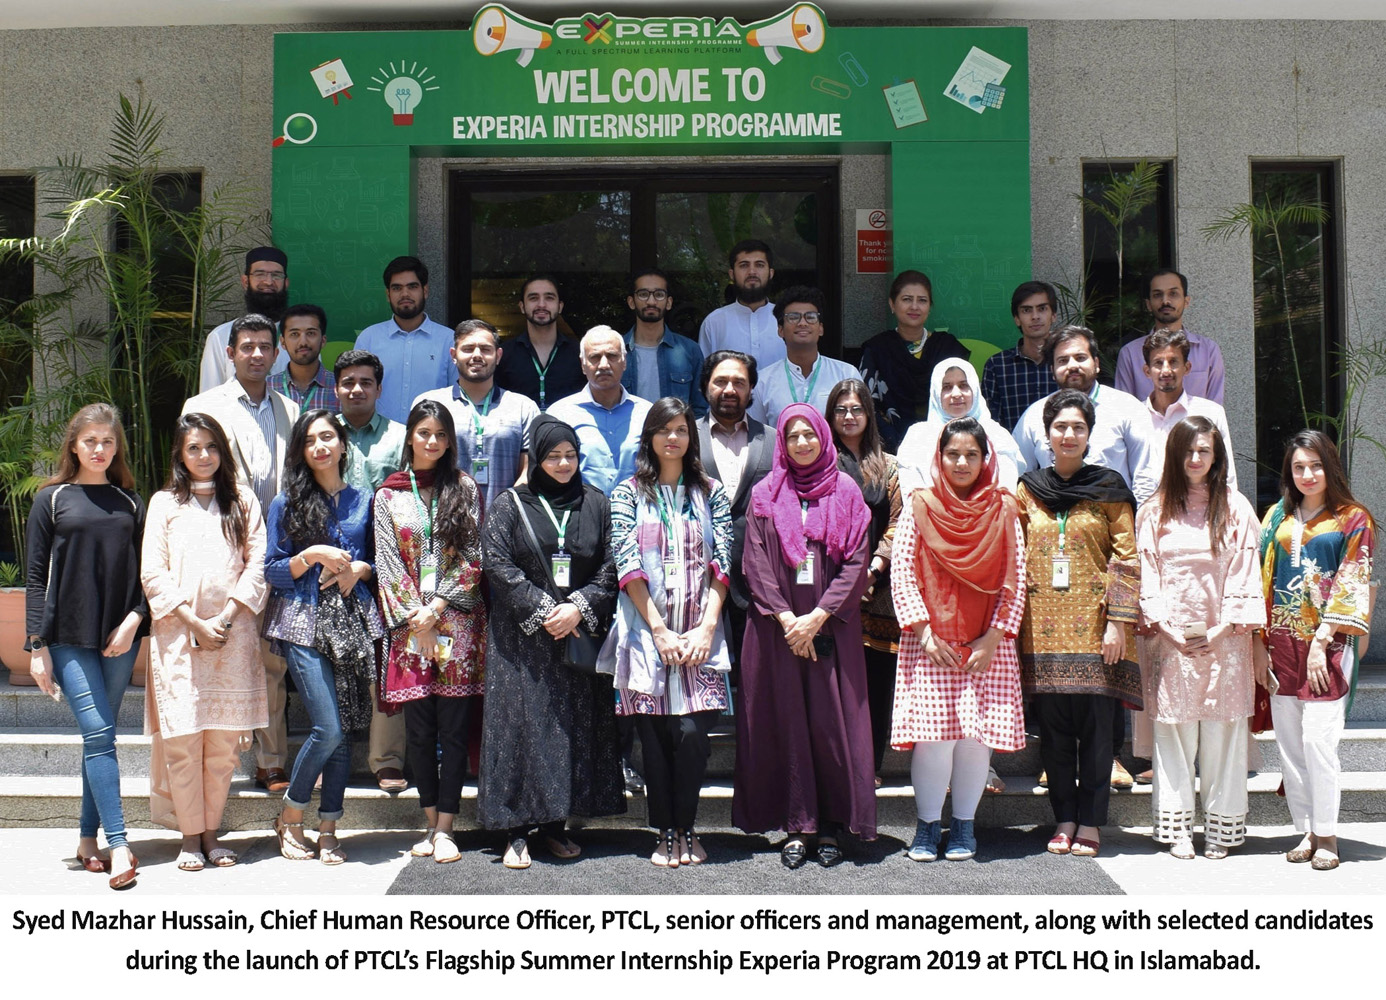 PTCL launches its Flagship Summer Internship Program 2019